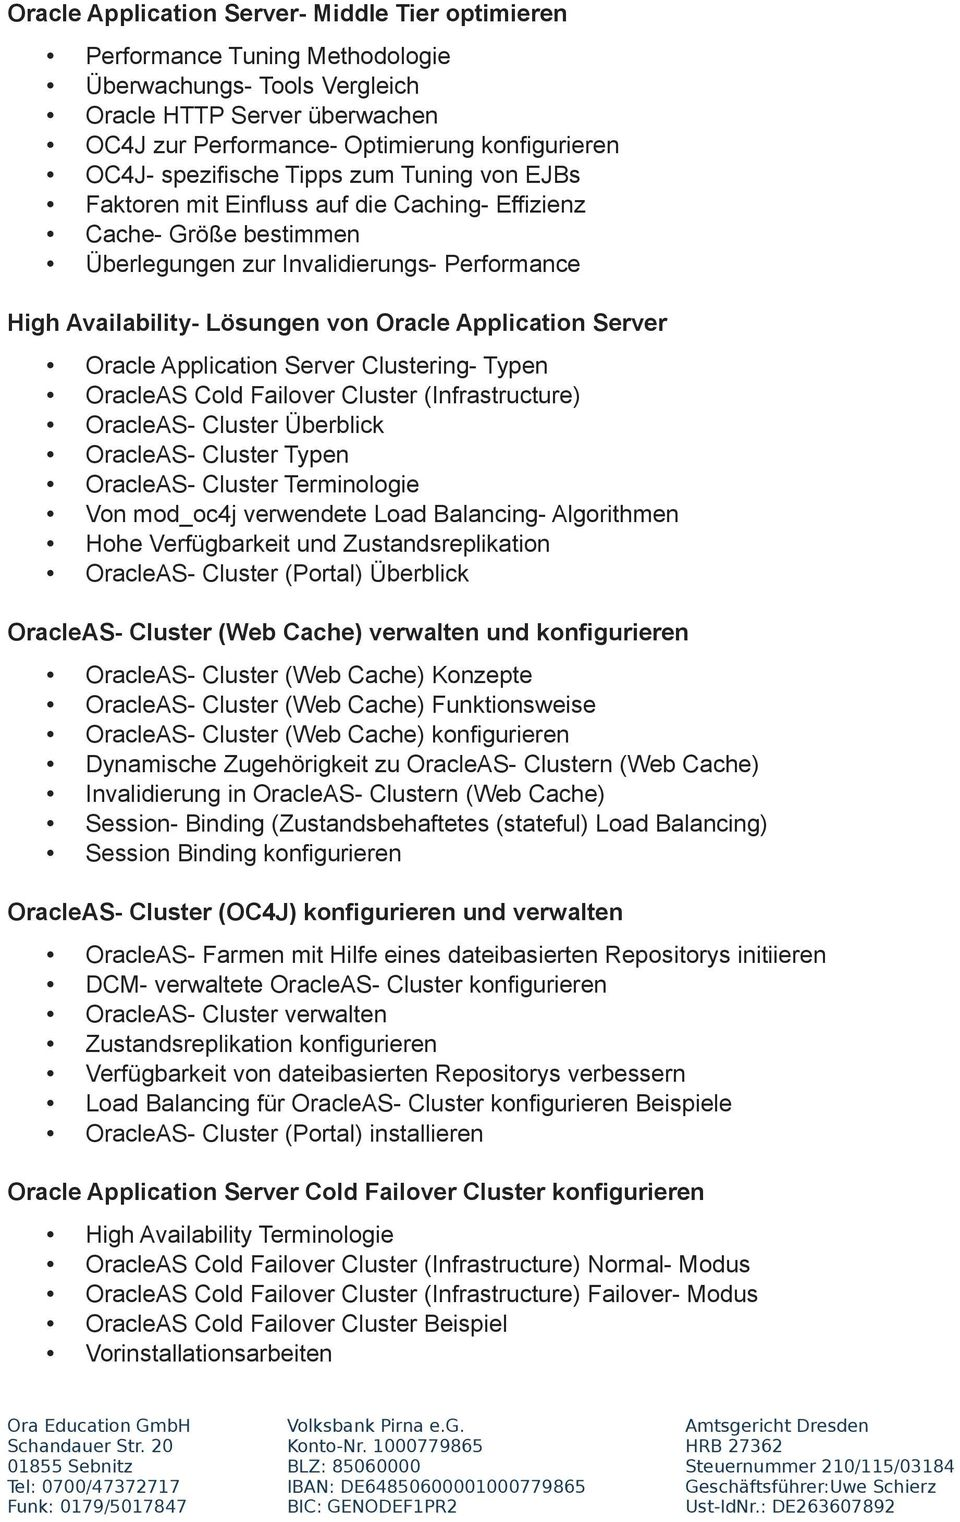 Application Server Oracle Application Server Clustering- Typen OracleAS Cold Failover Cluster (Infrastructure) OracleAS- Cluster Überblick OracleAS- Cluster Typen OracleAS- Cluster Terminologie Von